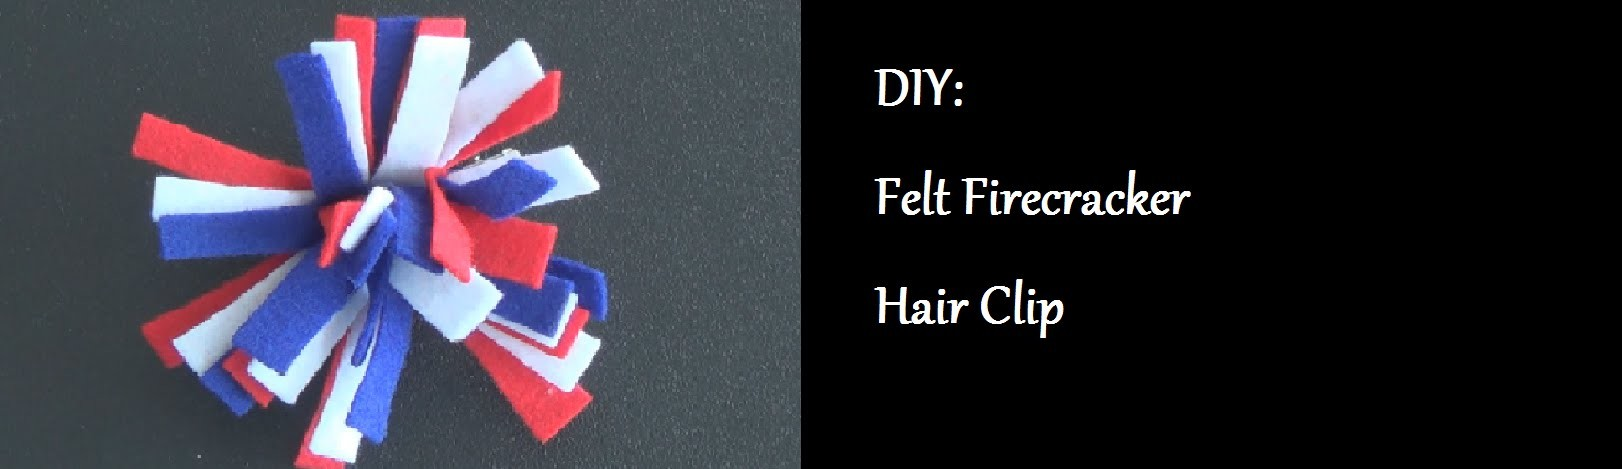 DIY: Felt Firecracker Hair Clip